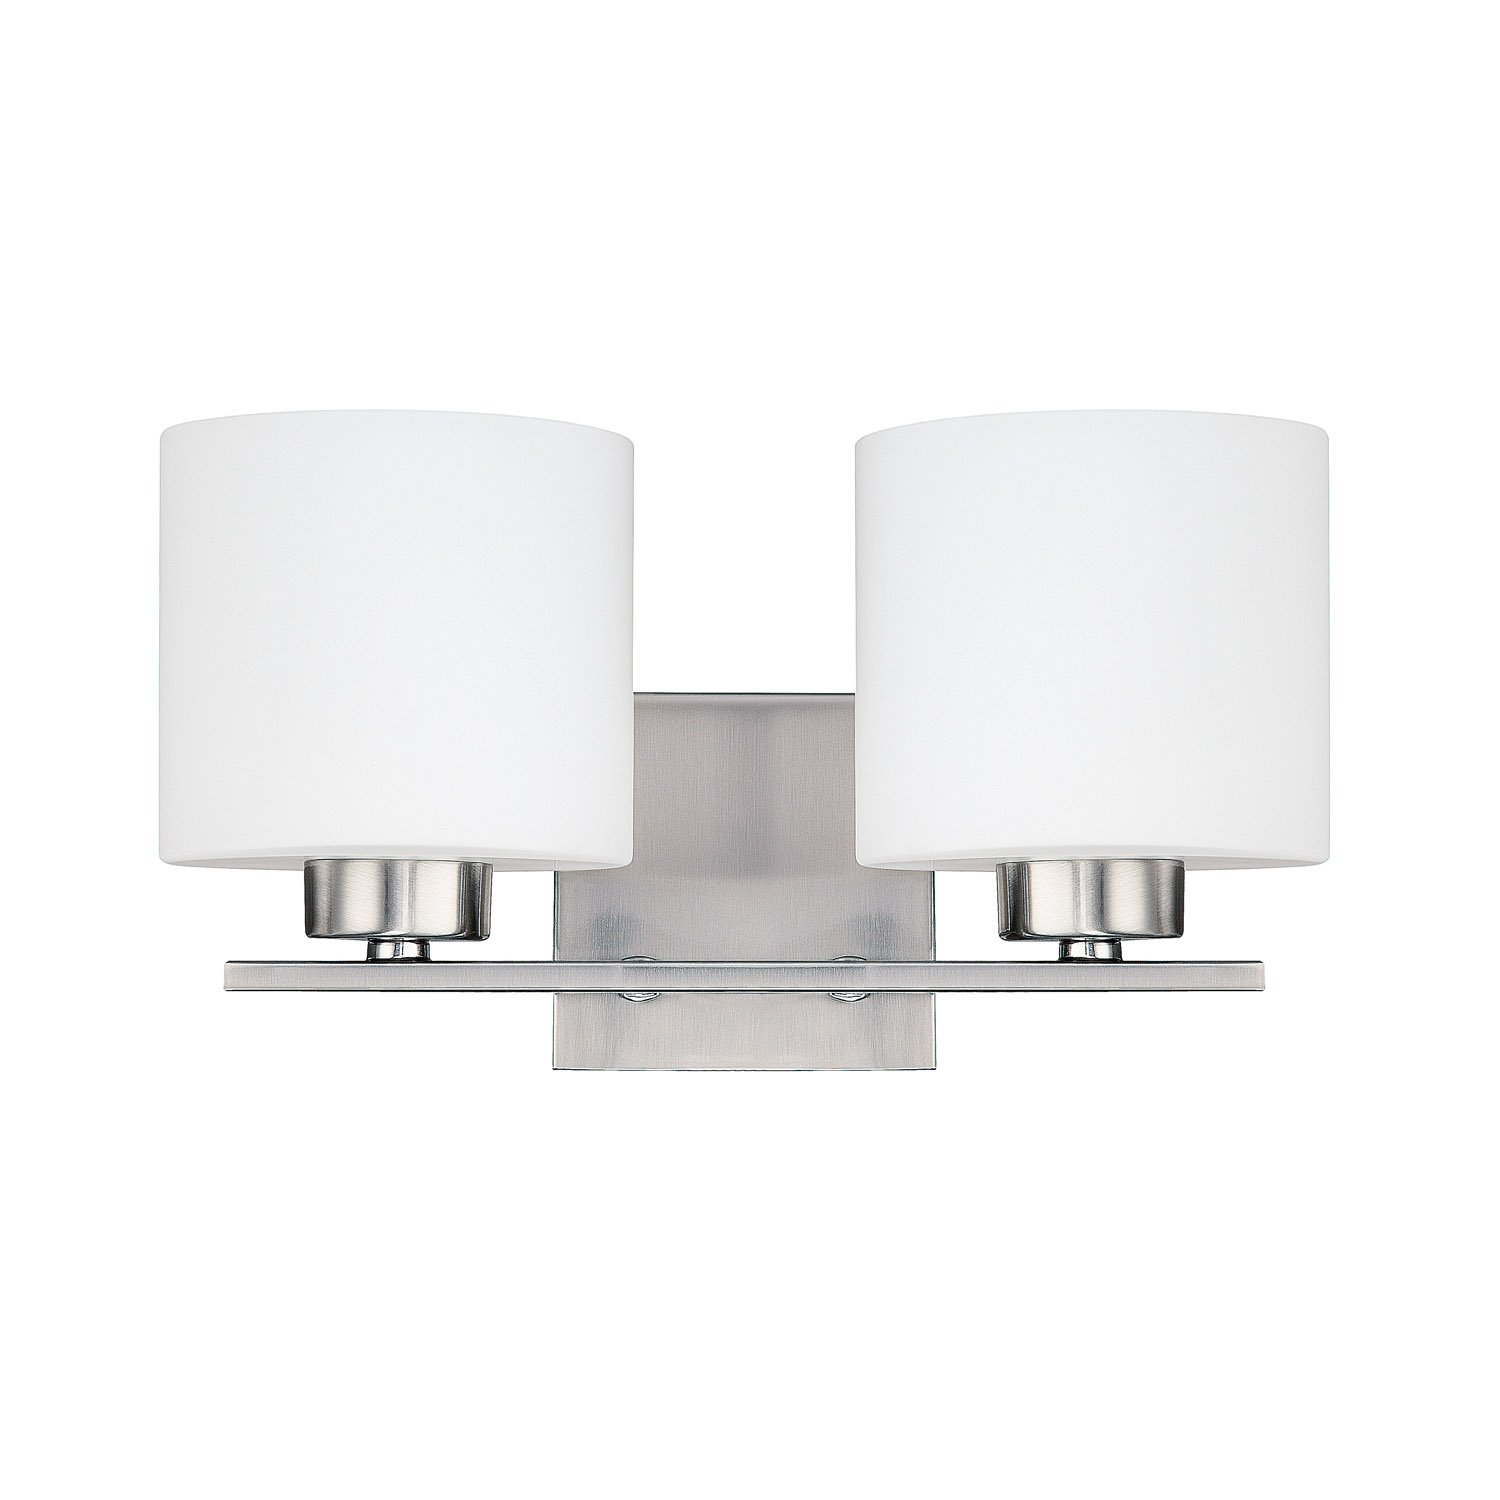 Capital Lighting 8492BN 103 Steel 2 Light Vanity Fixture, Brushed Nickel  Finish With Soft White Glass   Bathroom Lighting   Amazon.com